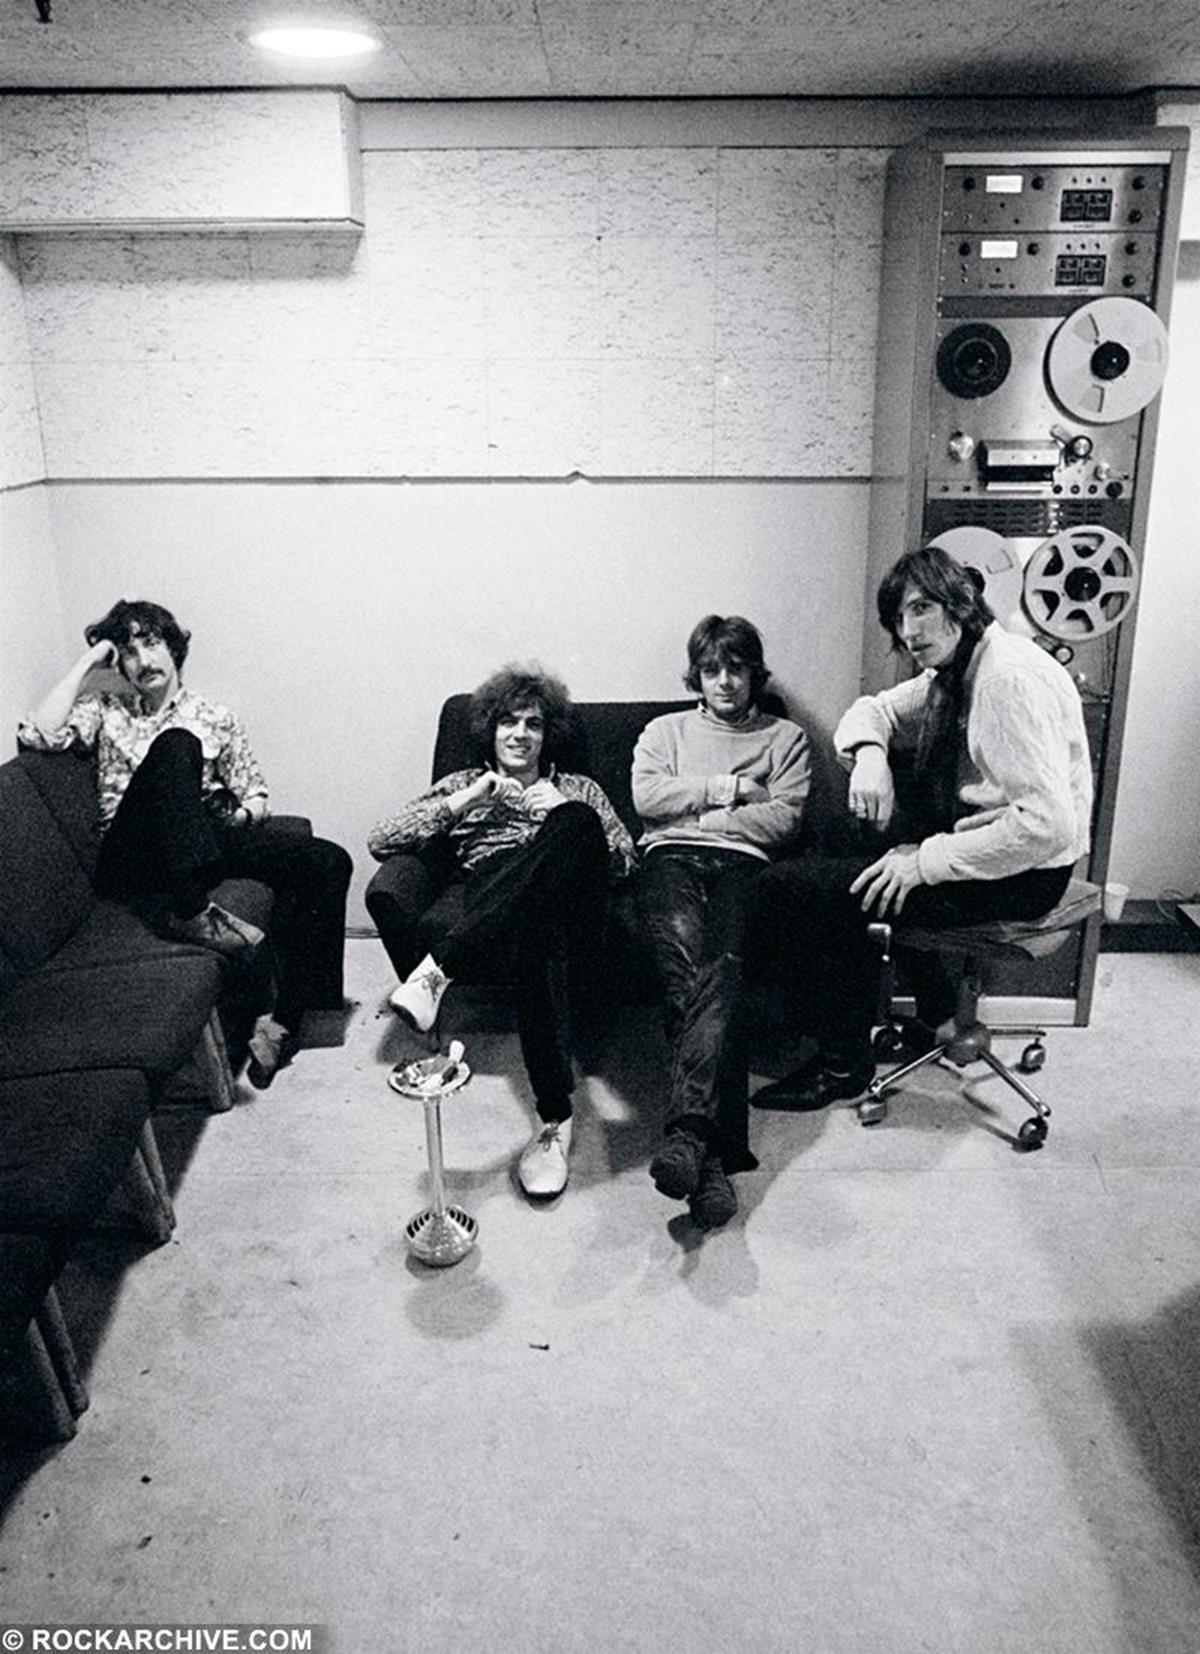 The original band members of Pink Floyd relaxing at Abbey Road Studios whilst recording their debut album 'The Piper at the Gates of Dawn' in June 1967. © Andrew Whittuck